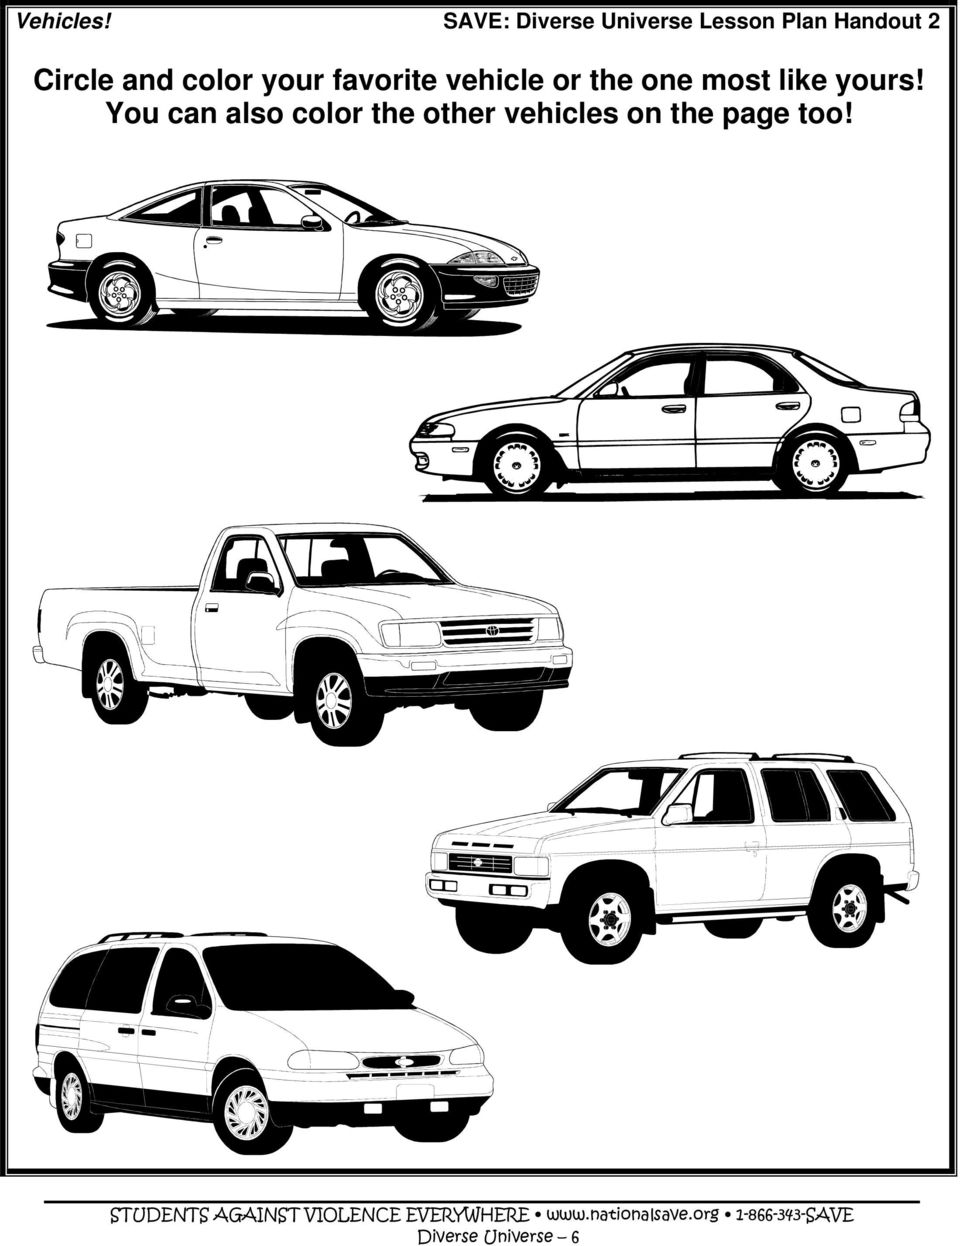 Circle and color your favorite vehicle or the